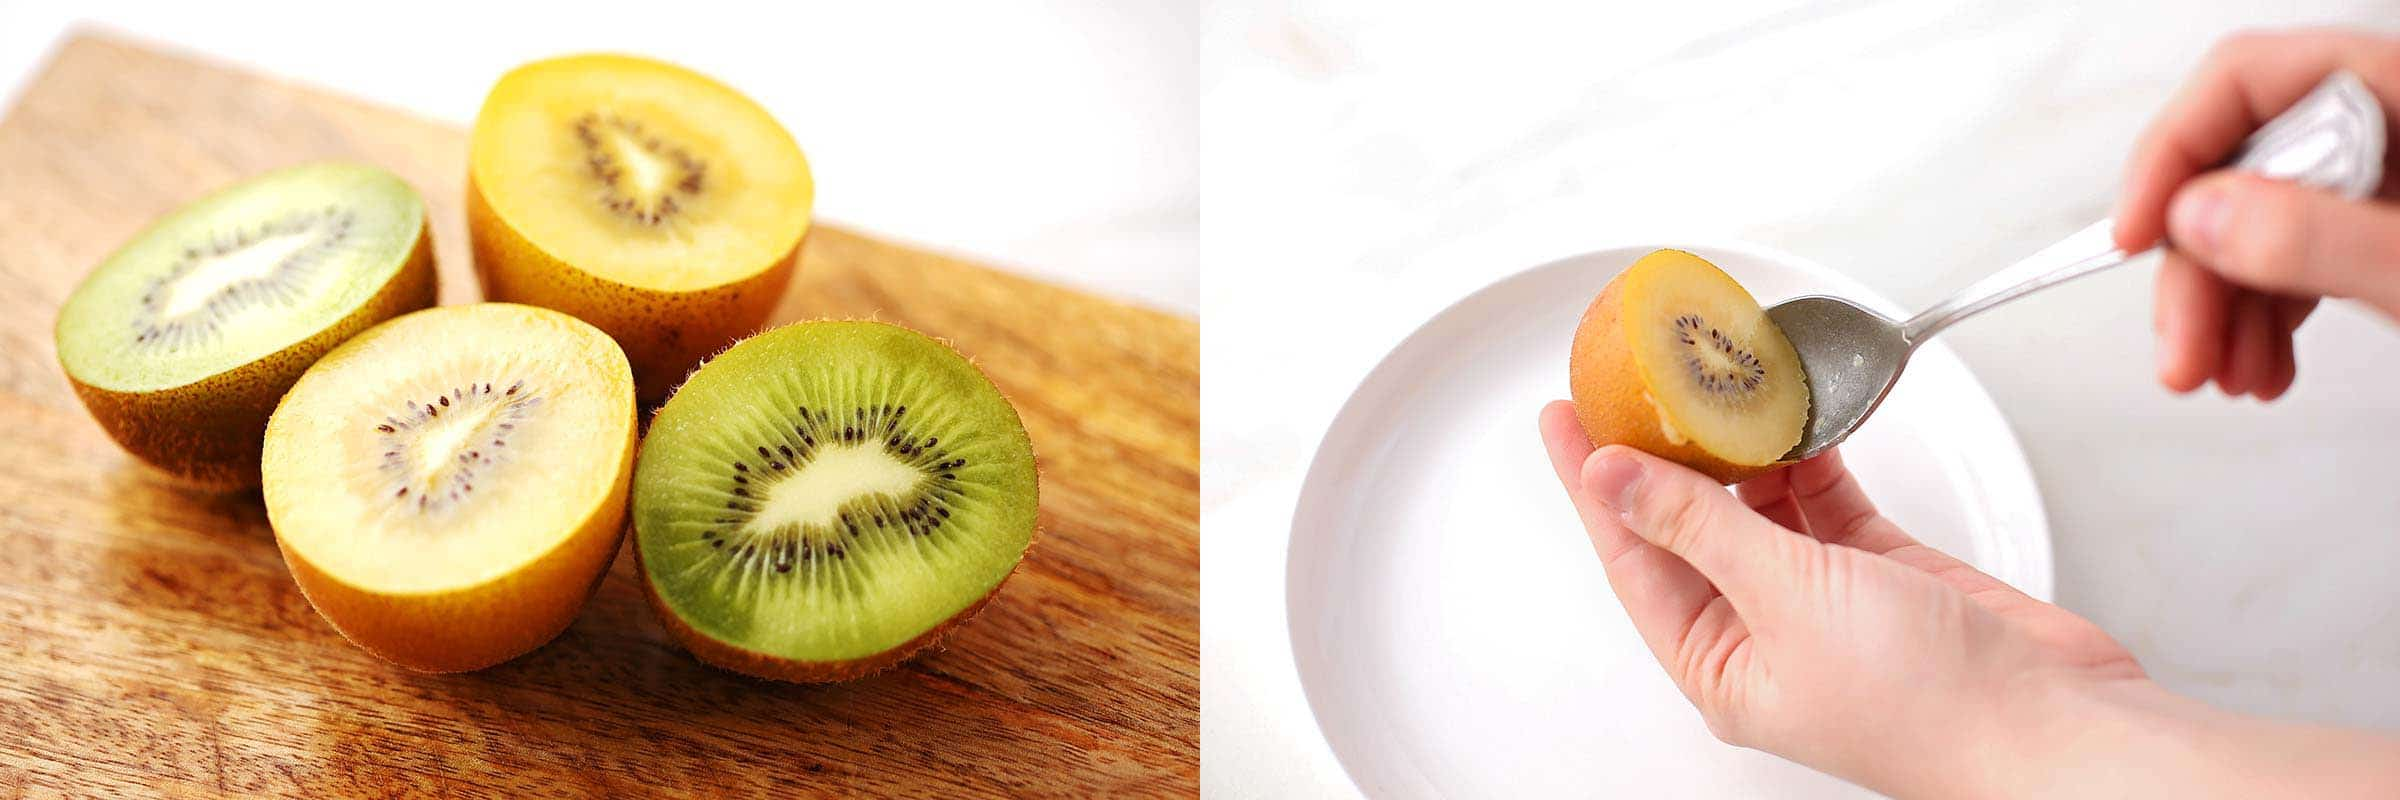 images how to cut kiwi using a poon method